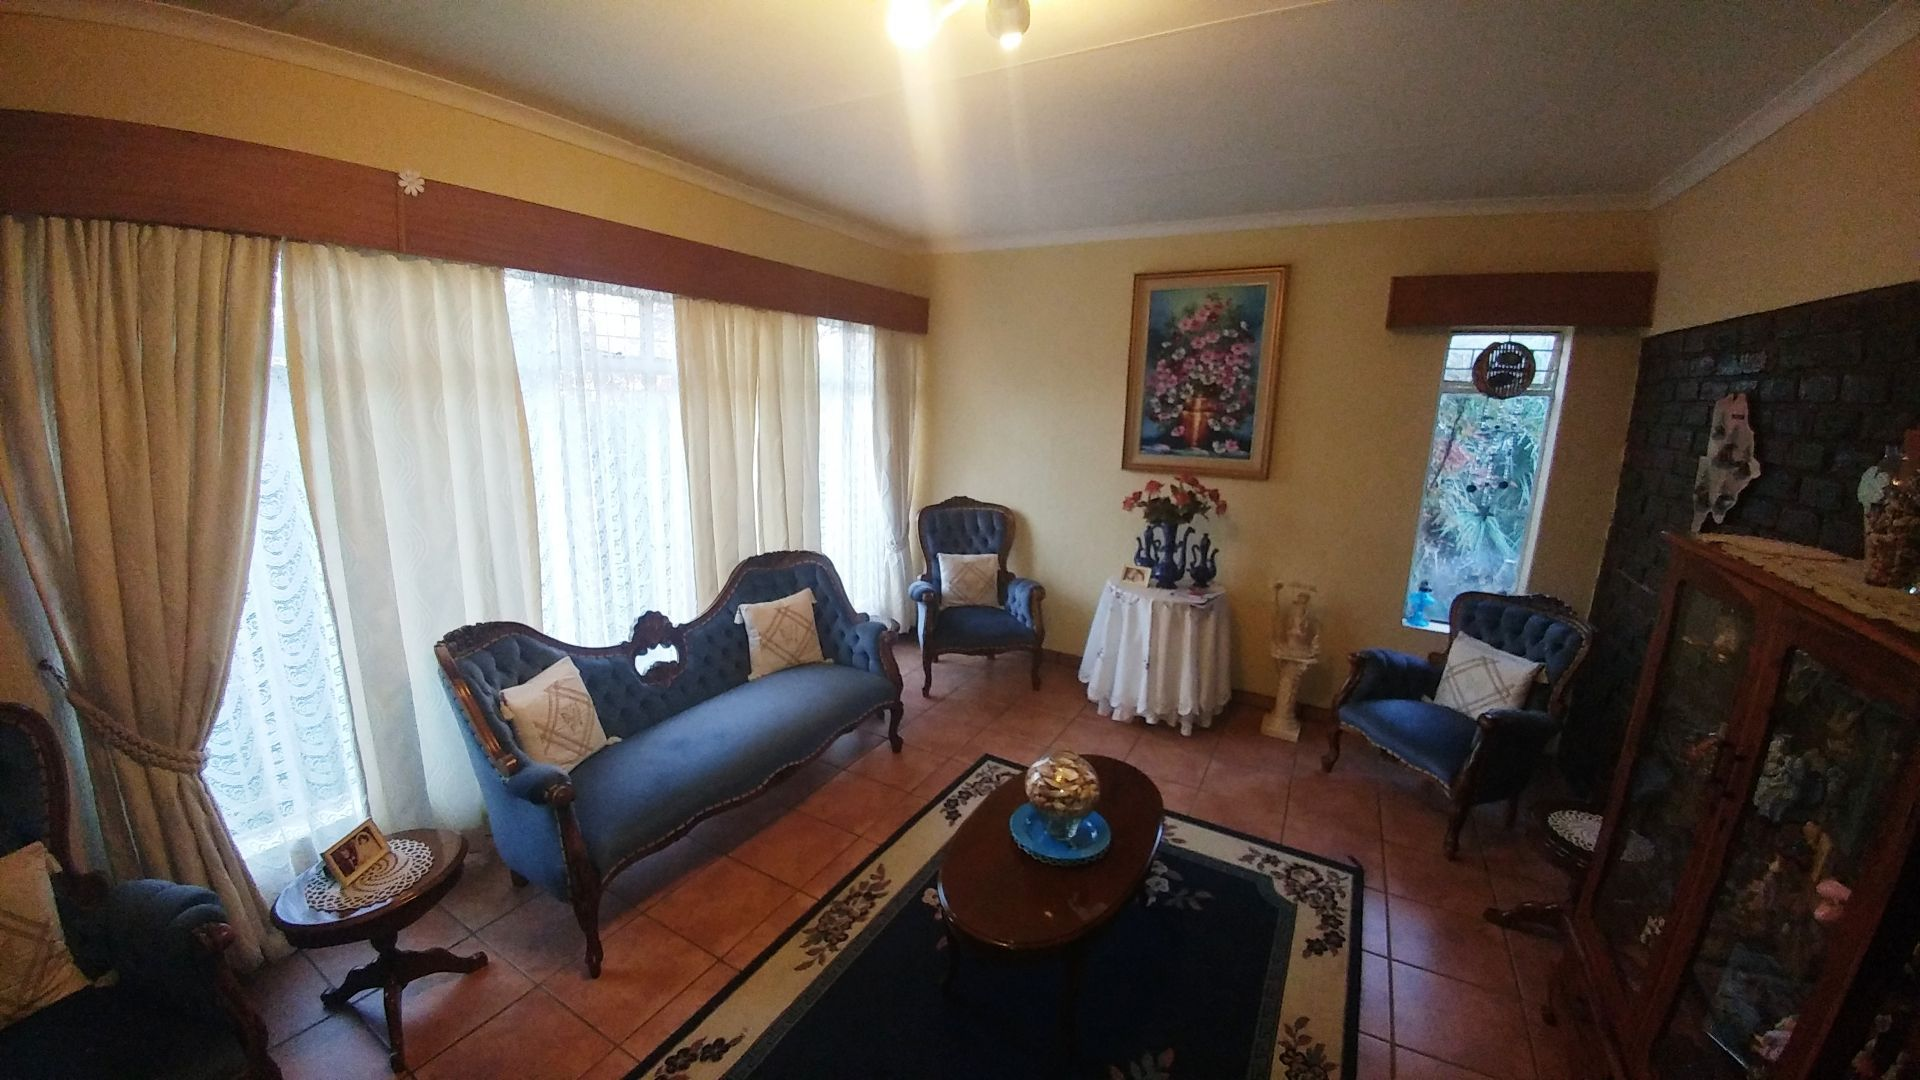 Potchefstroom Central property for sale. Ref No: 13508234. Picture no 7